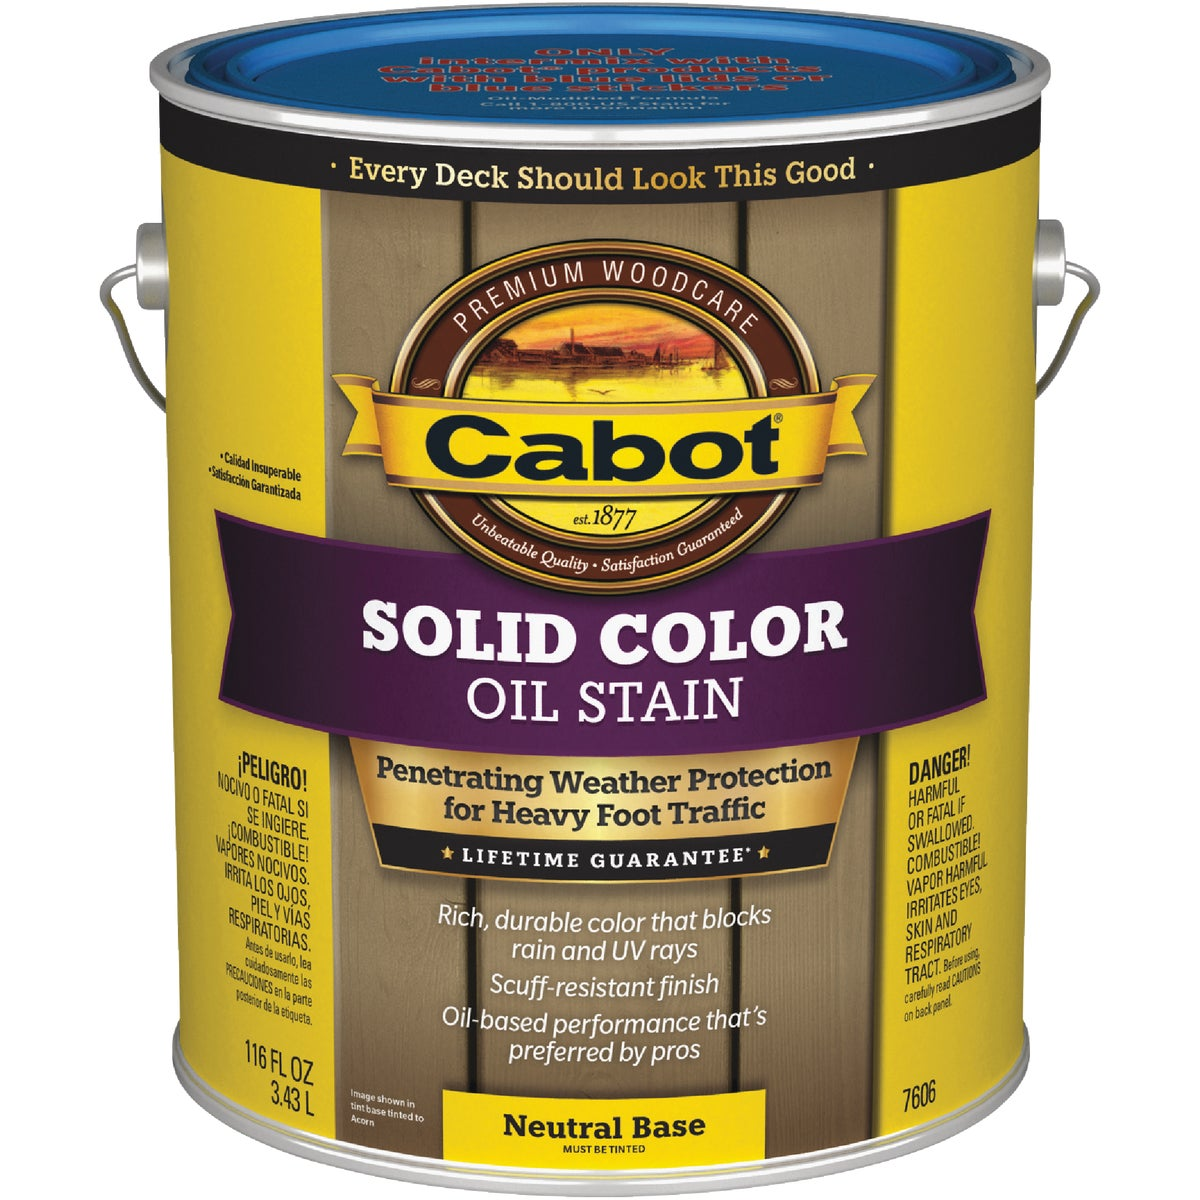 NEUT BS SOLID DECK STAIN - 140.0007606.007 by Valspar Corp